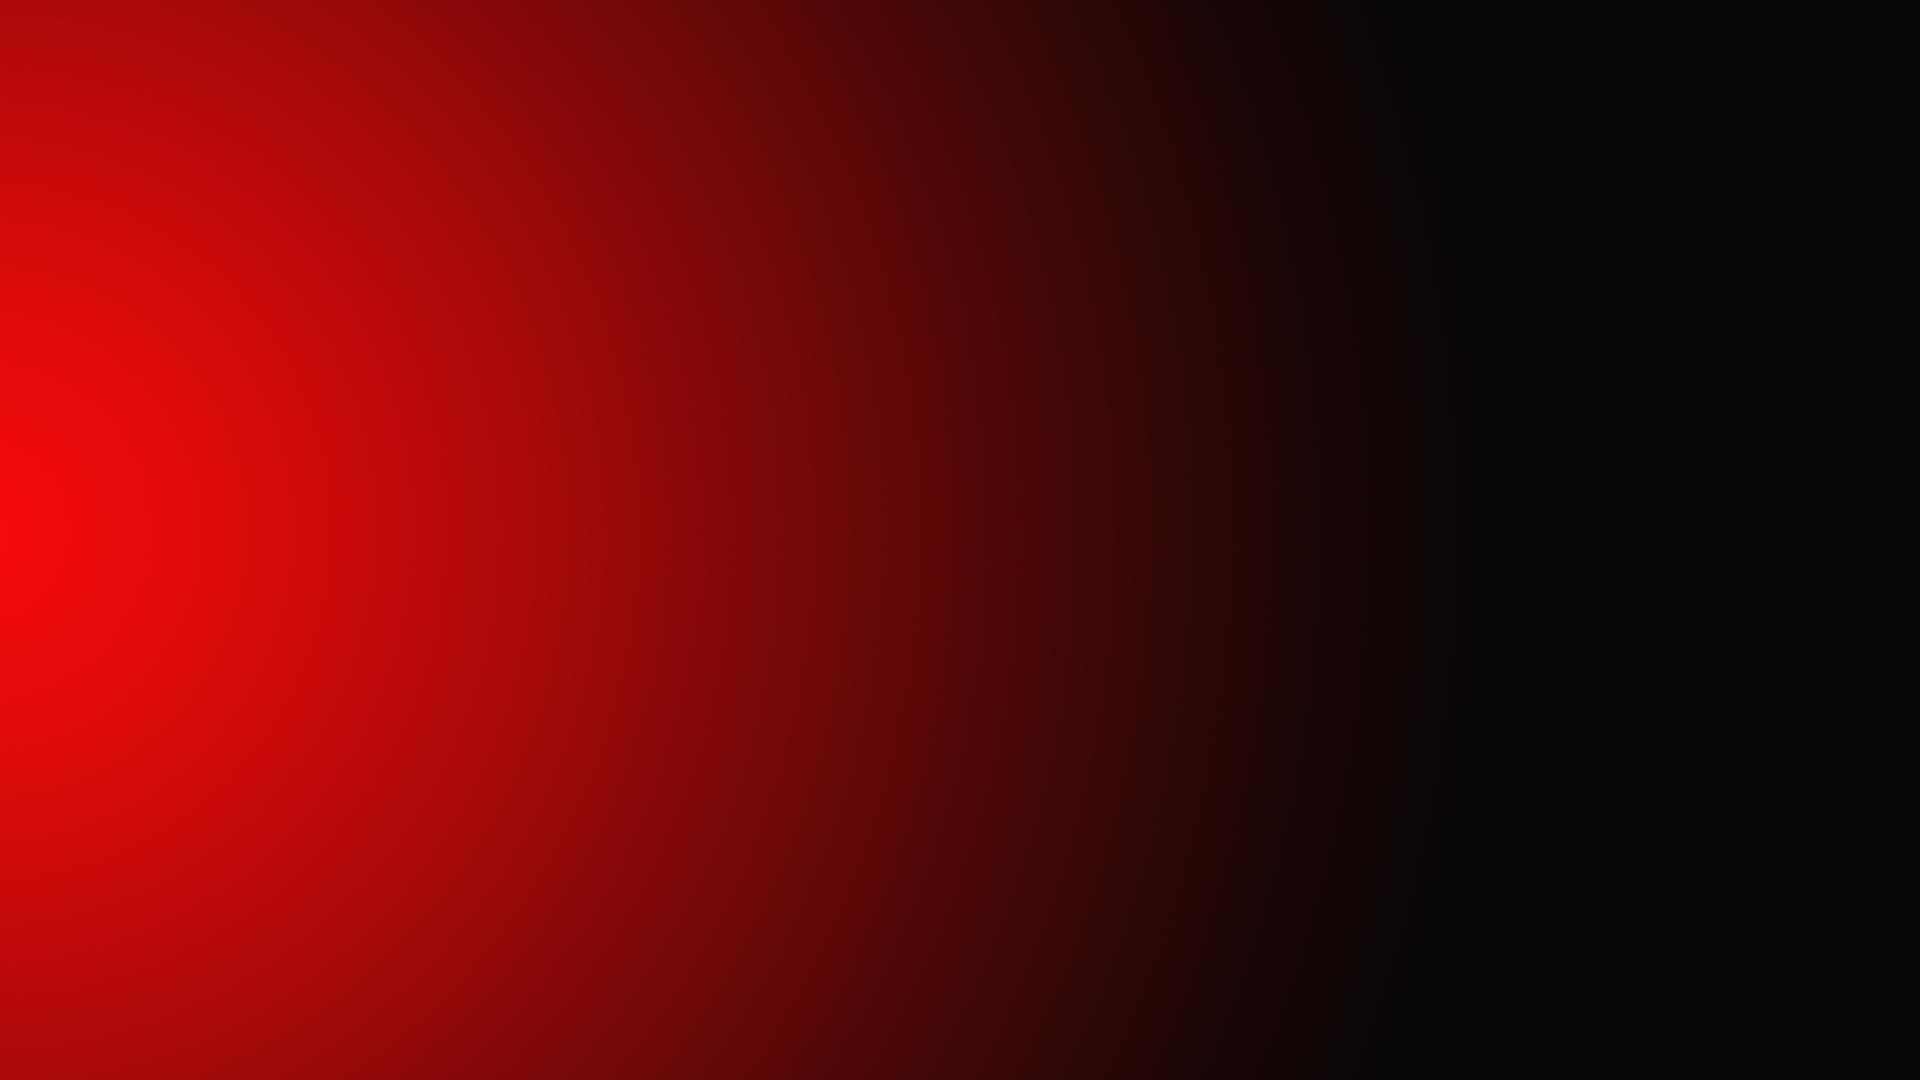 Desktop-hd-red-and-black-wallpaper-for-walls